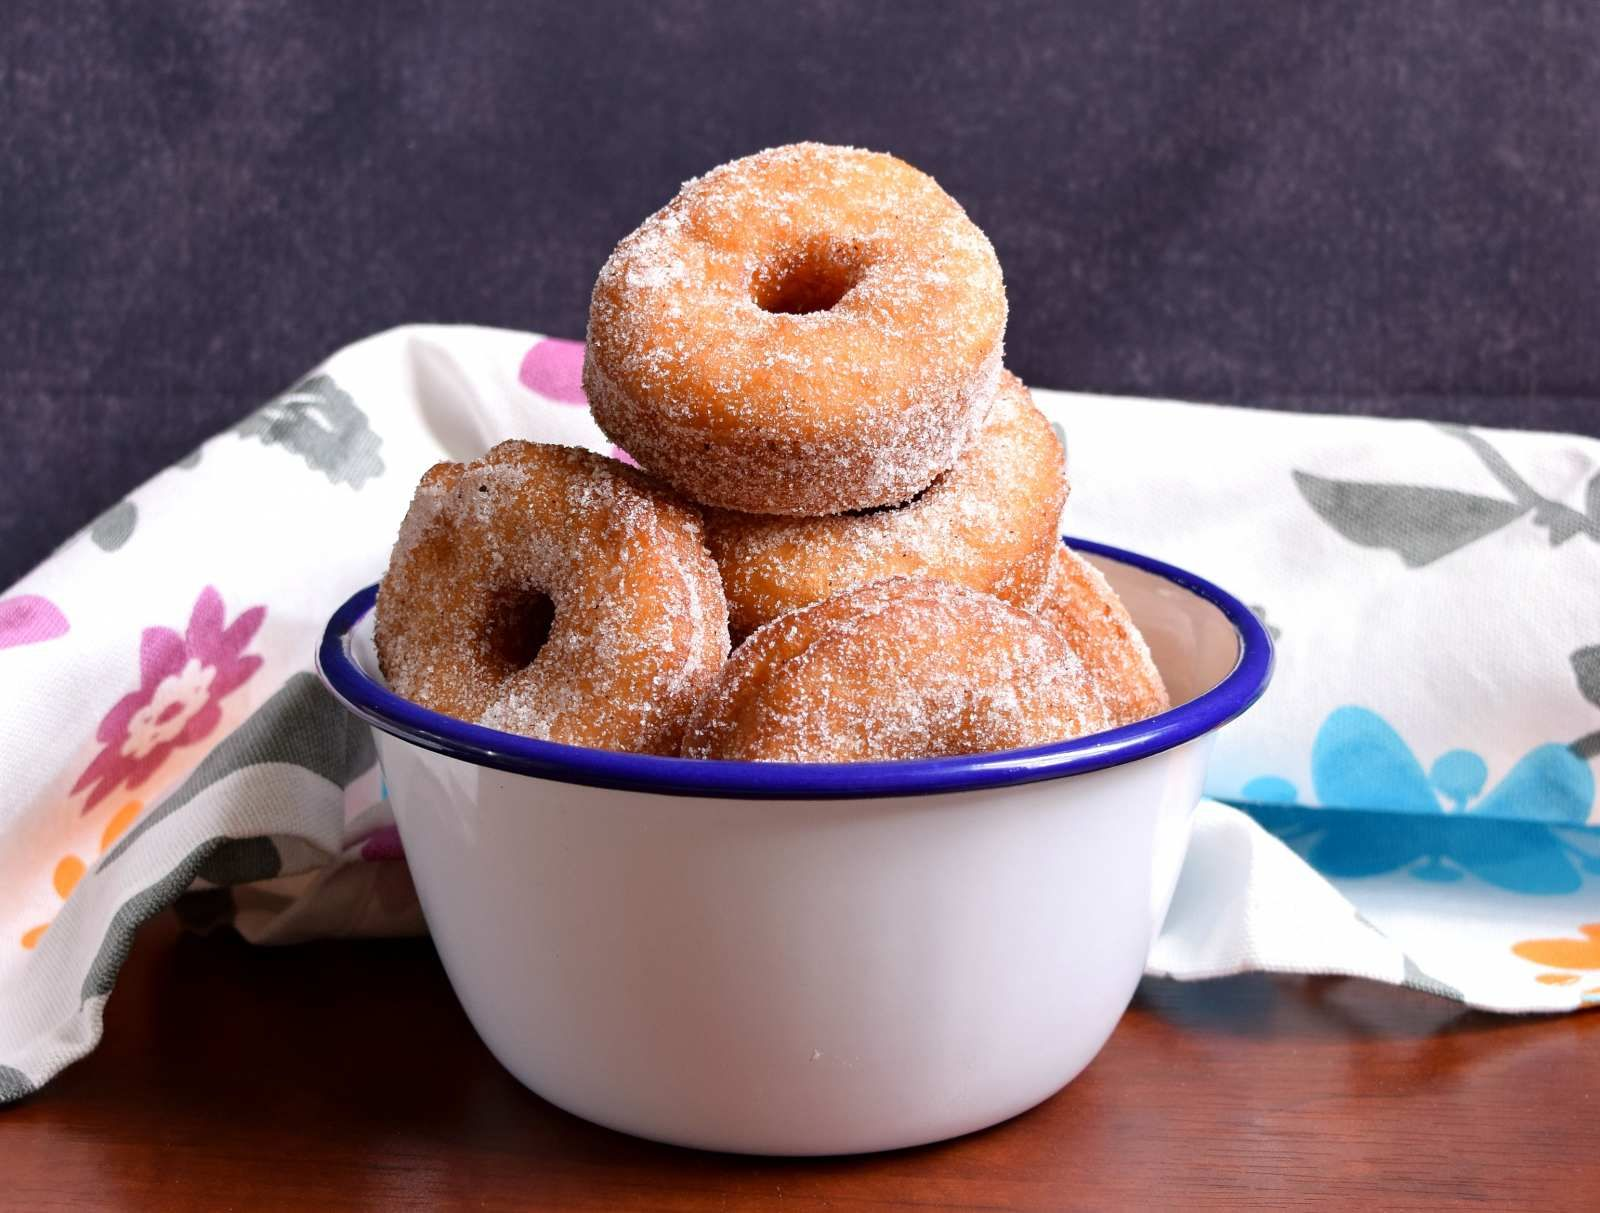 Eggless Cinnamon Sugar Donuts Recipe Donut Recipes And Homemade Baked